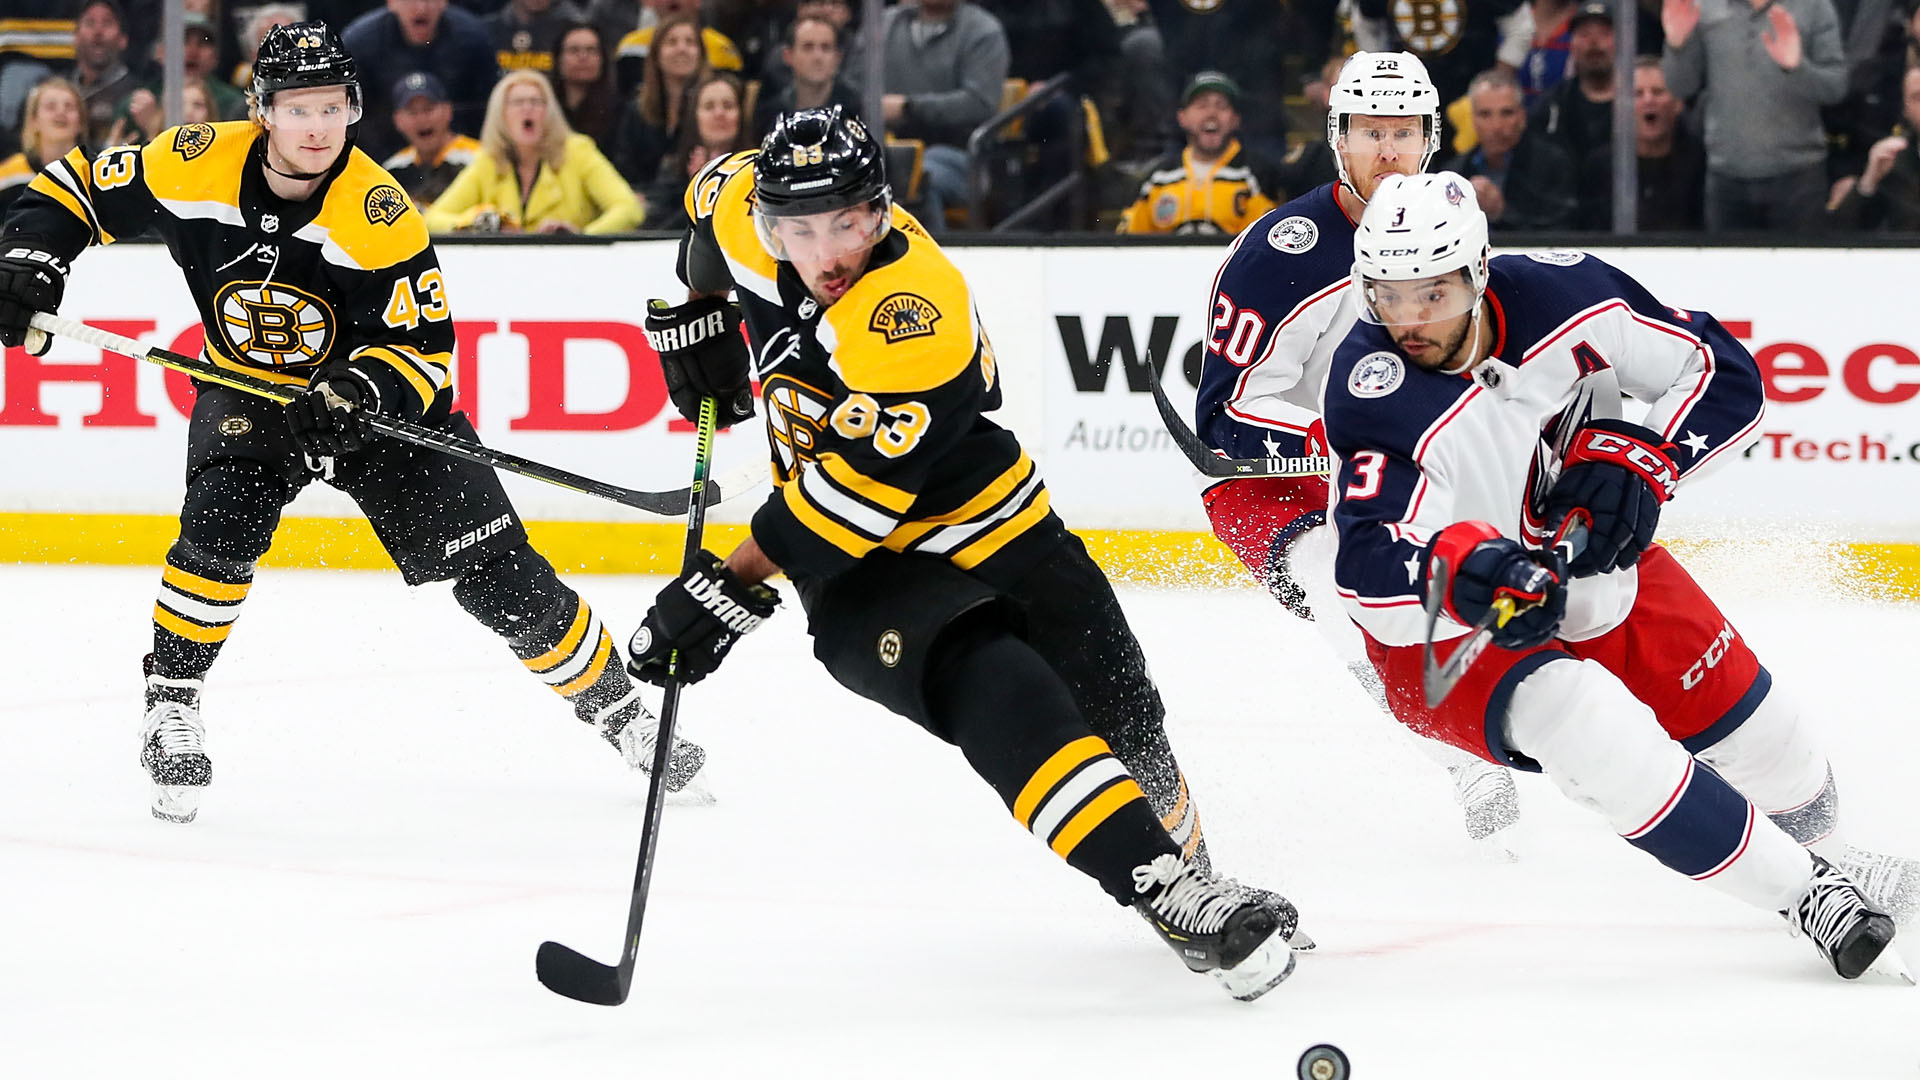 Stanley Cup Final: Bruins star Brad Marchand avoids injury after scare in scrimmage